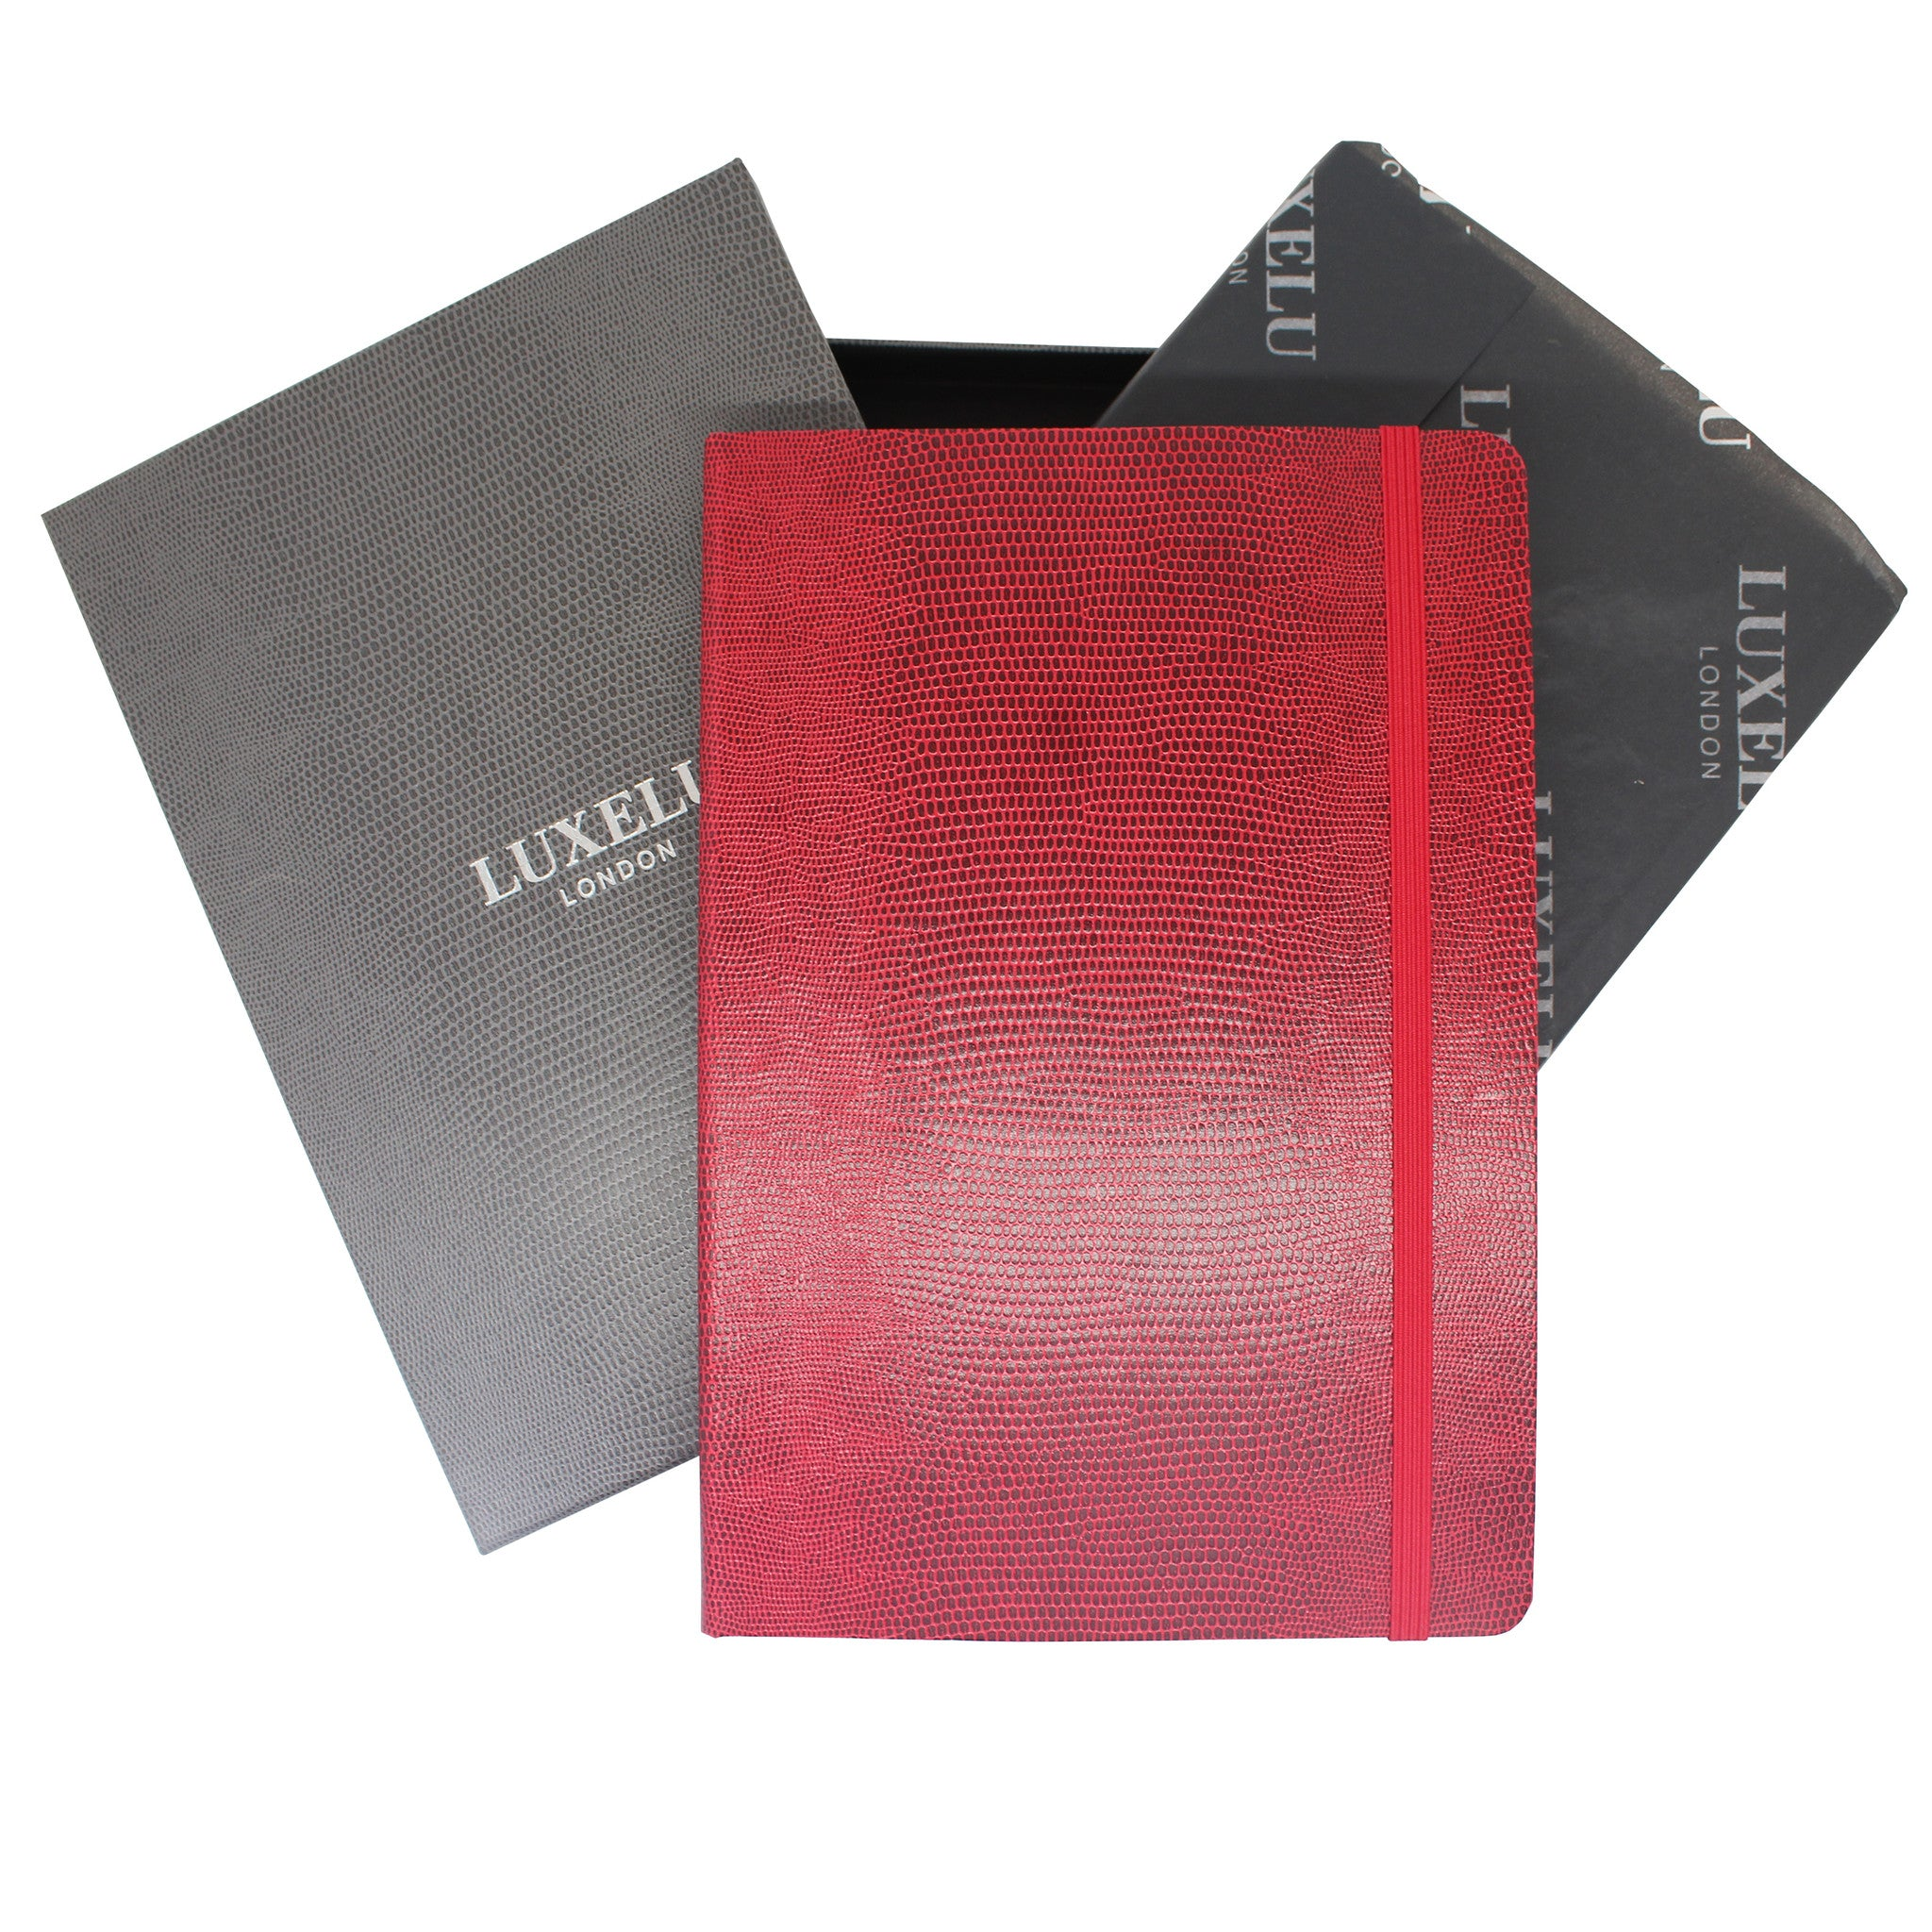 Signature Collection : Luxury A5 Notebook